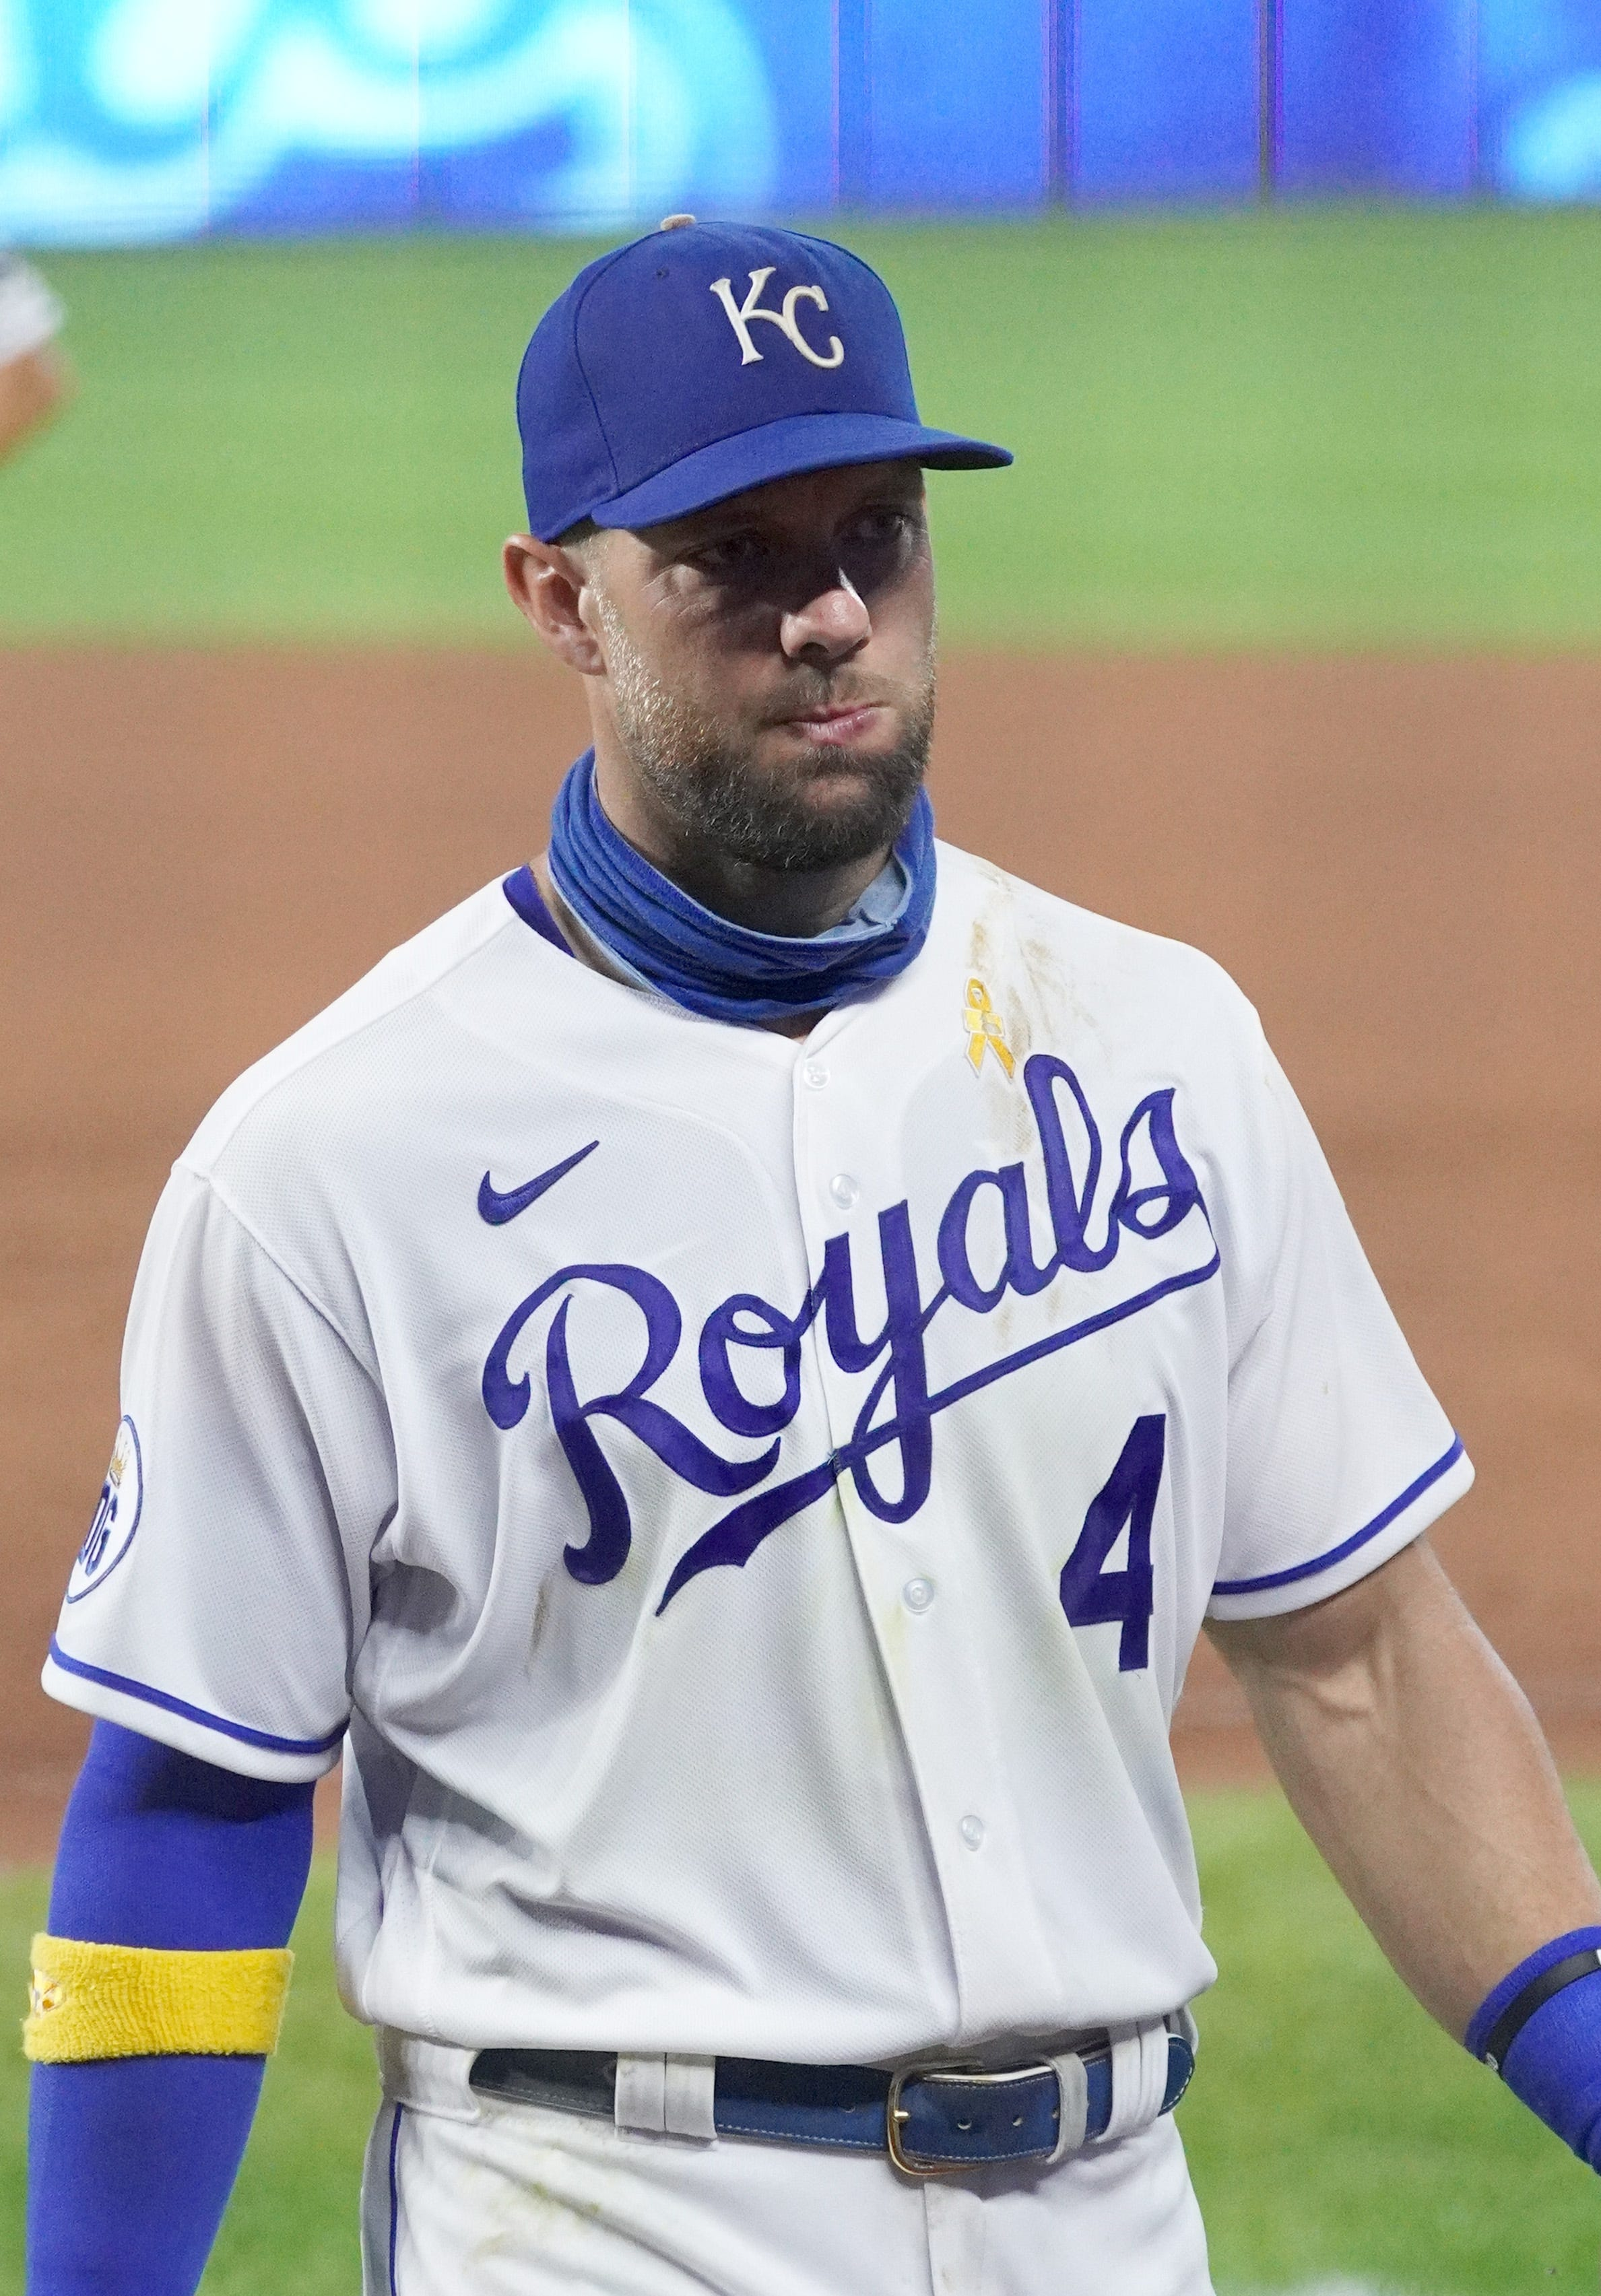 Alex Gordon will retire at end of 2020 MLB season after 14 years with Kansas City Royals